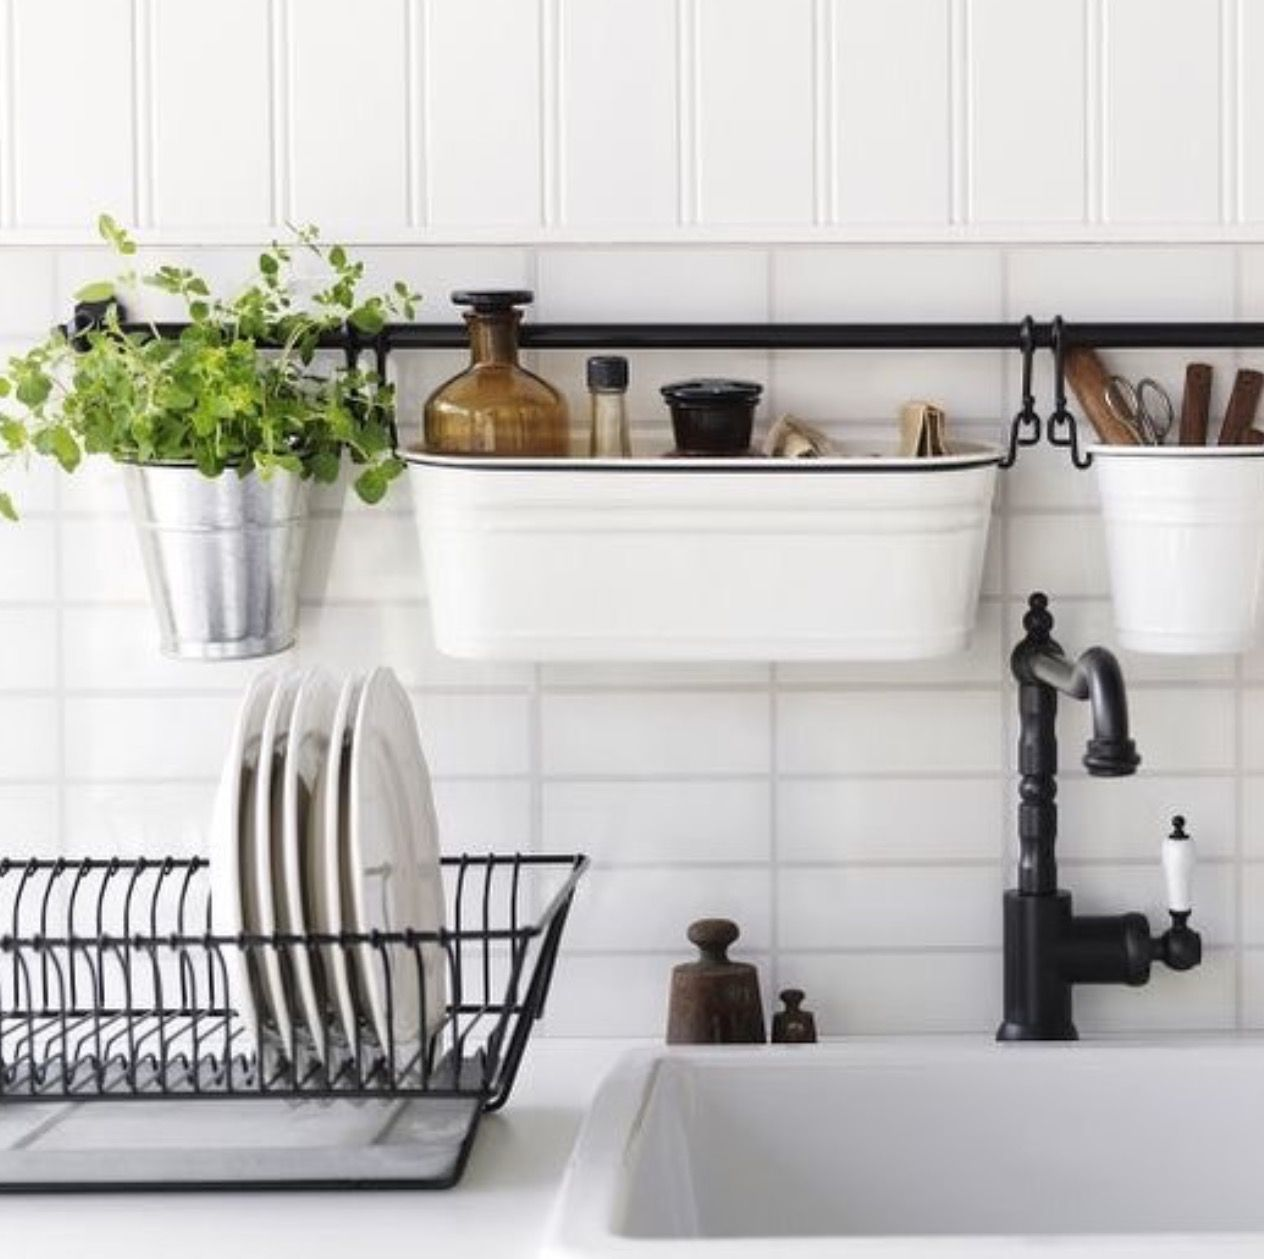 kitchen rail system built in soap dispenser for sink ikea fintorp black apartment ideas pinterest